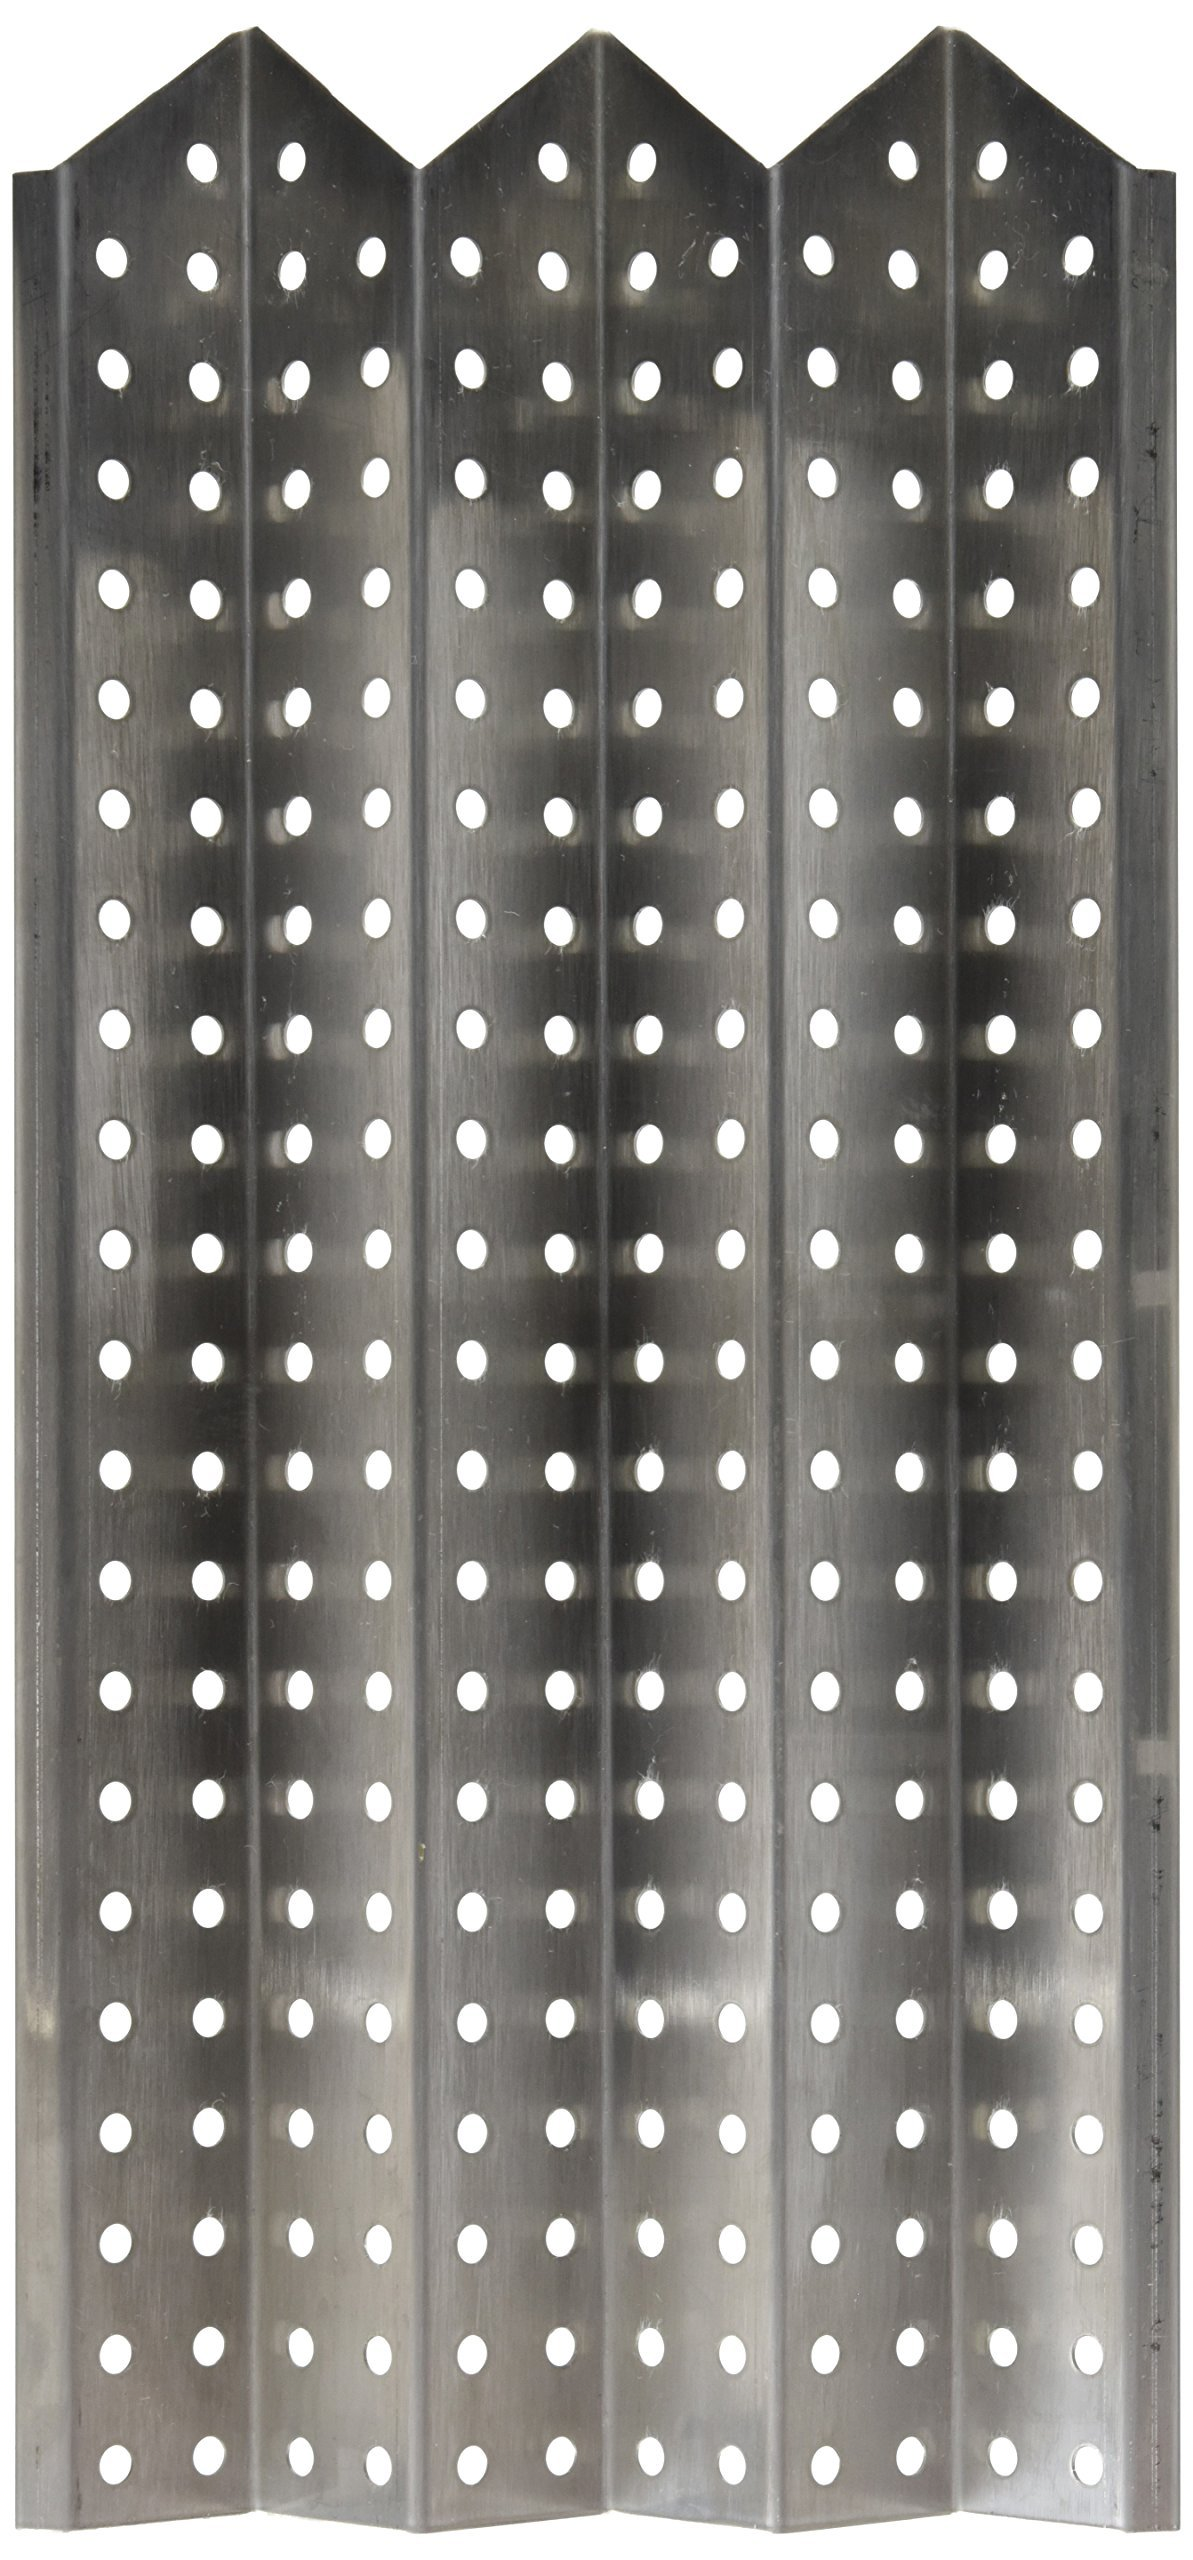 SUNSTONE P-FL-3B 304 Stainless Steel Flavor Zone for 28''Grill